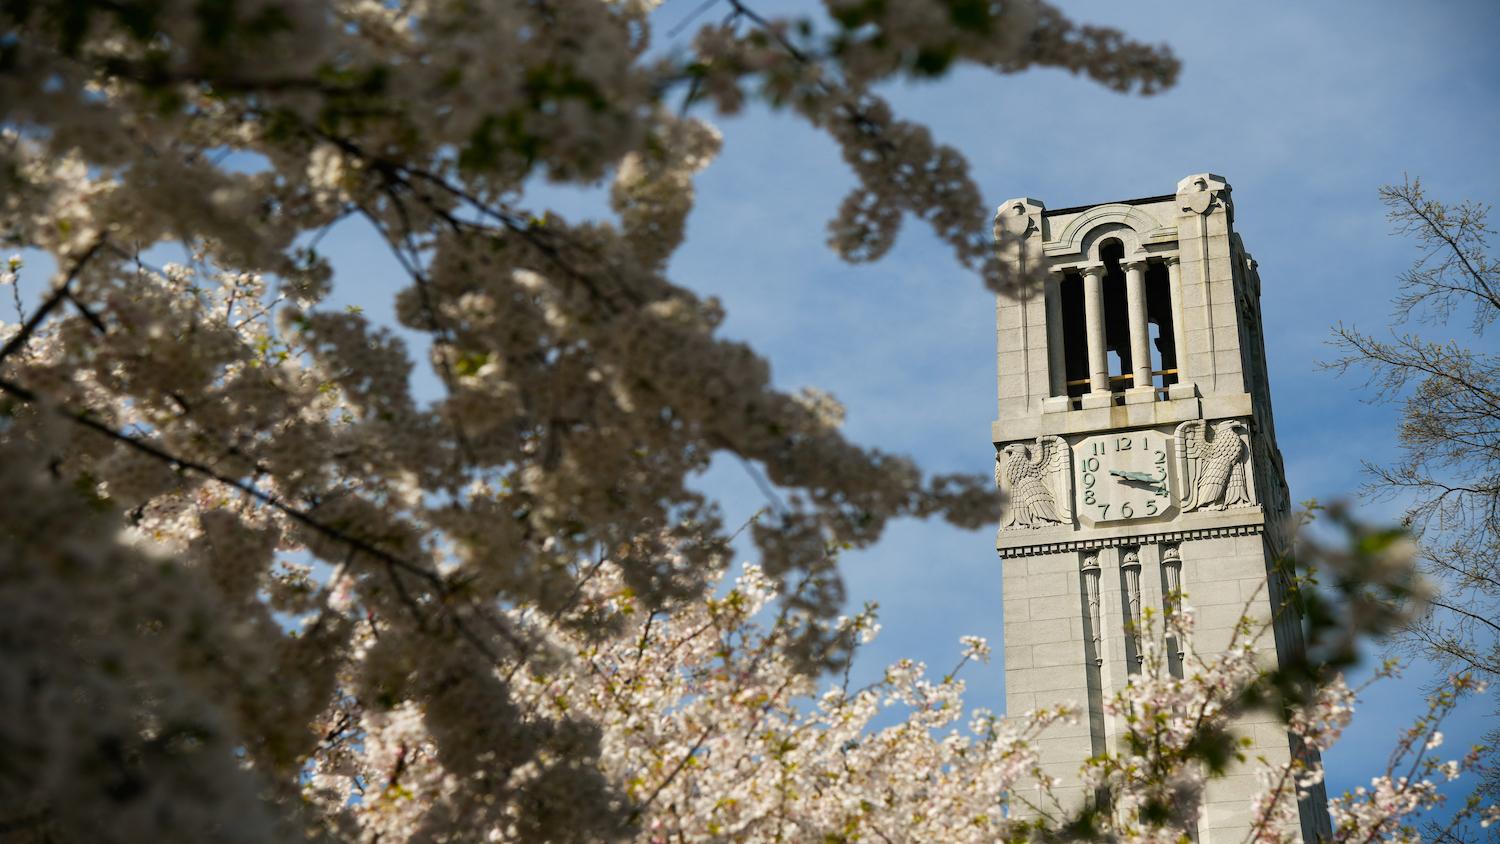 The Belltower framed by blooming trees in Spring.